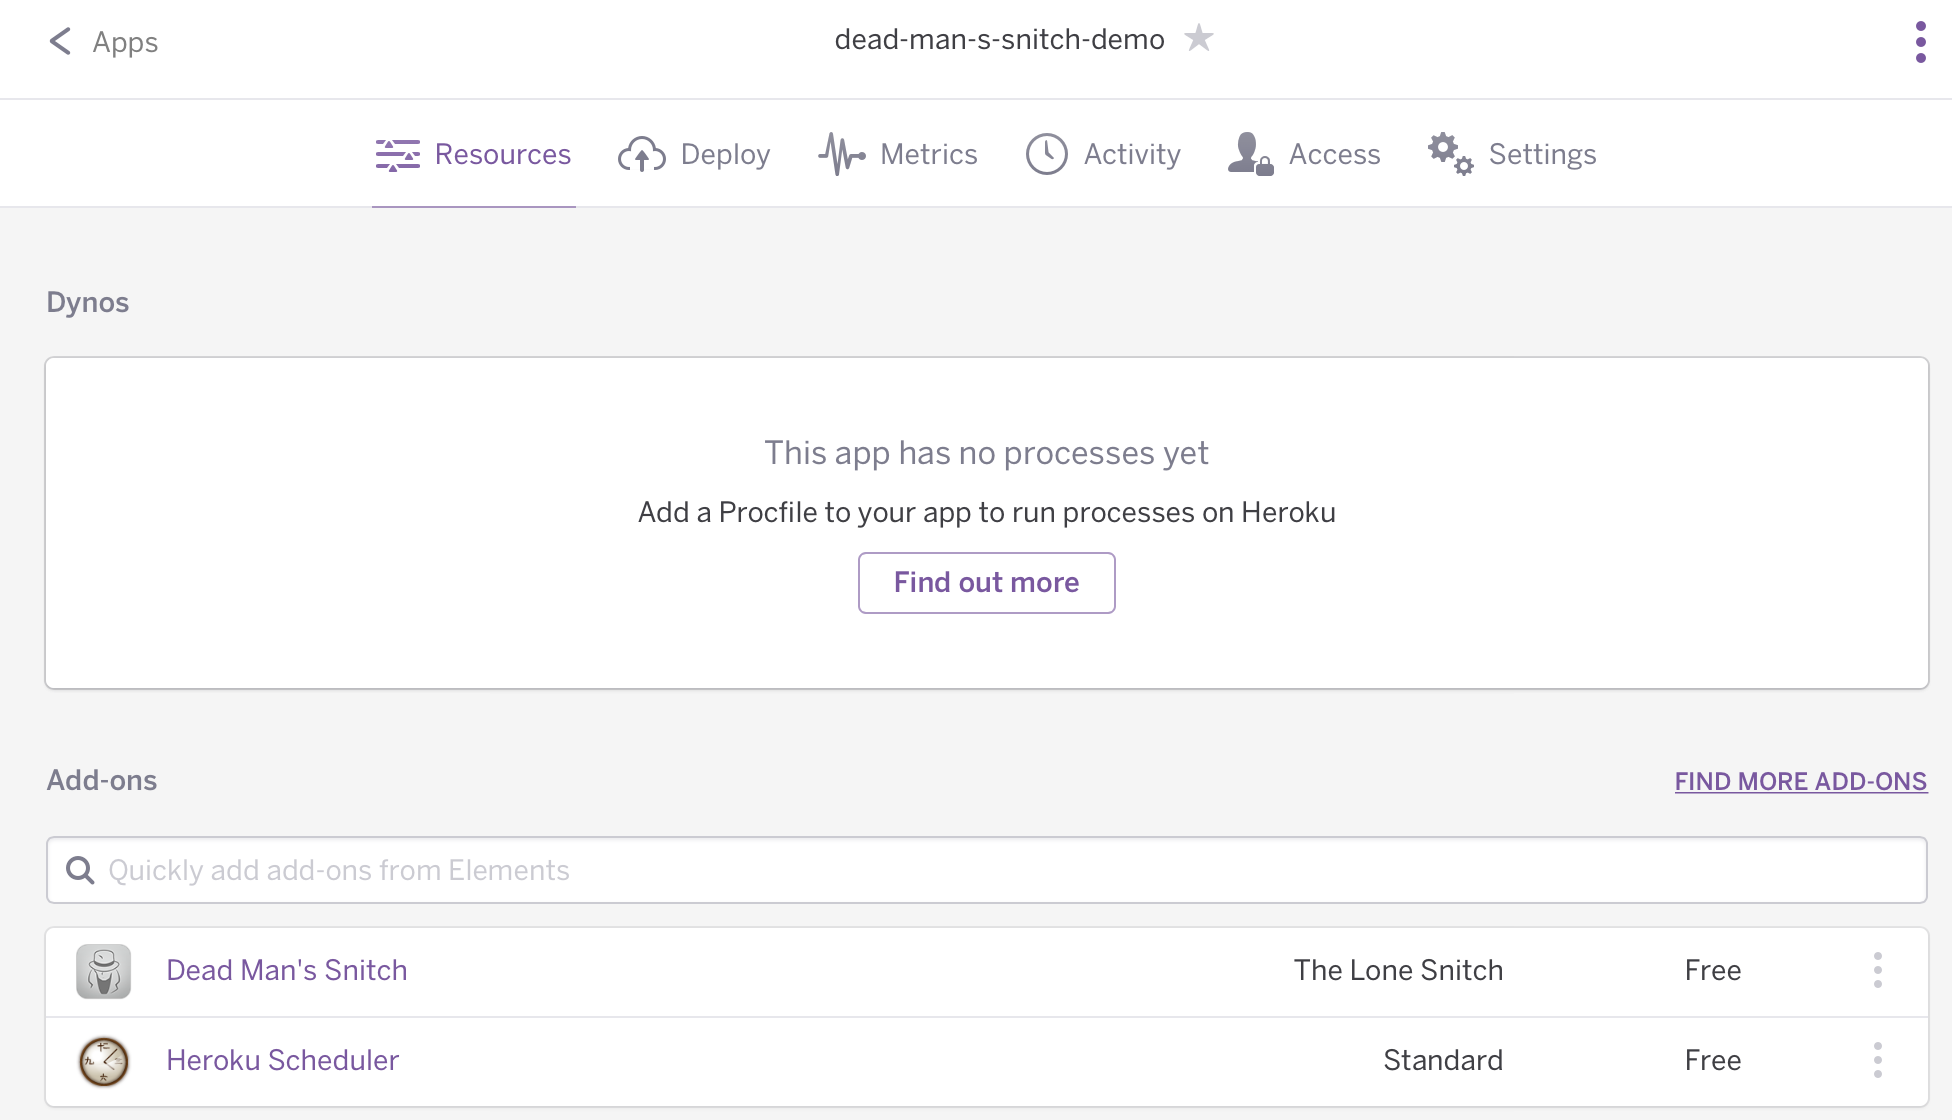 dead-man-s-snitch-demo_Resources___Heroku